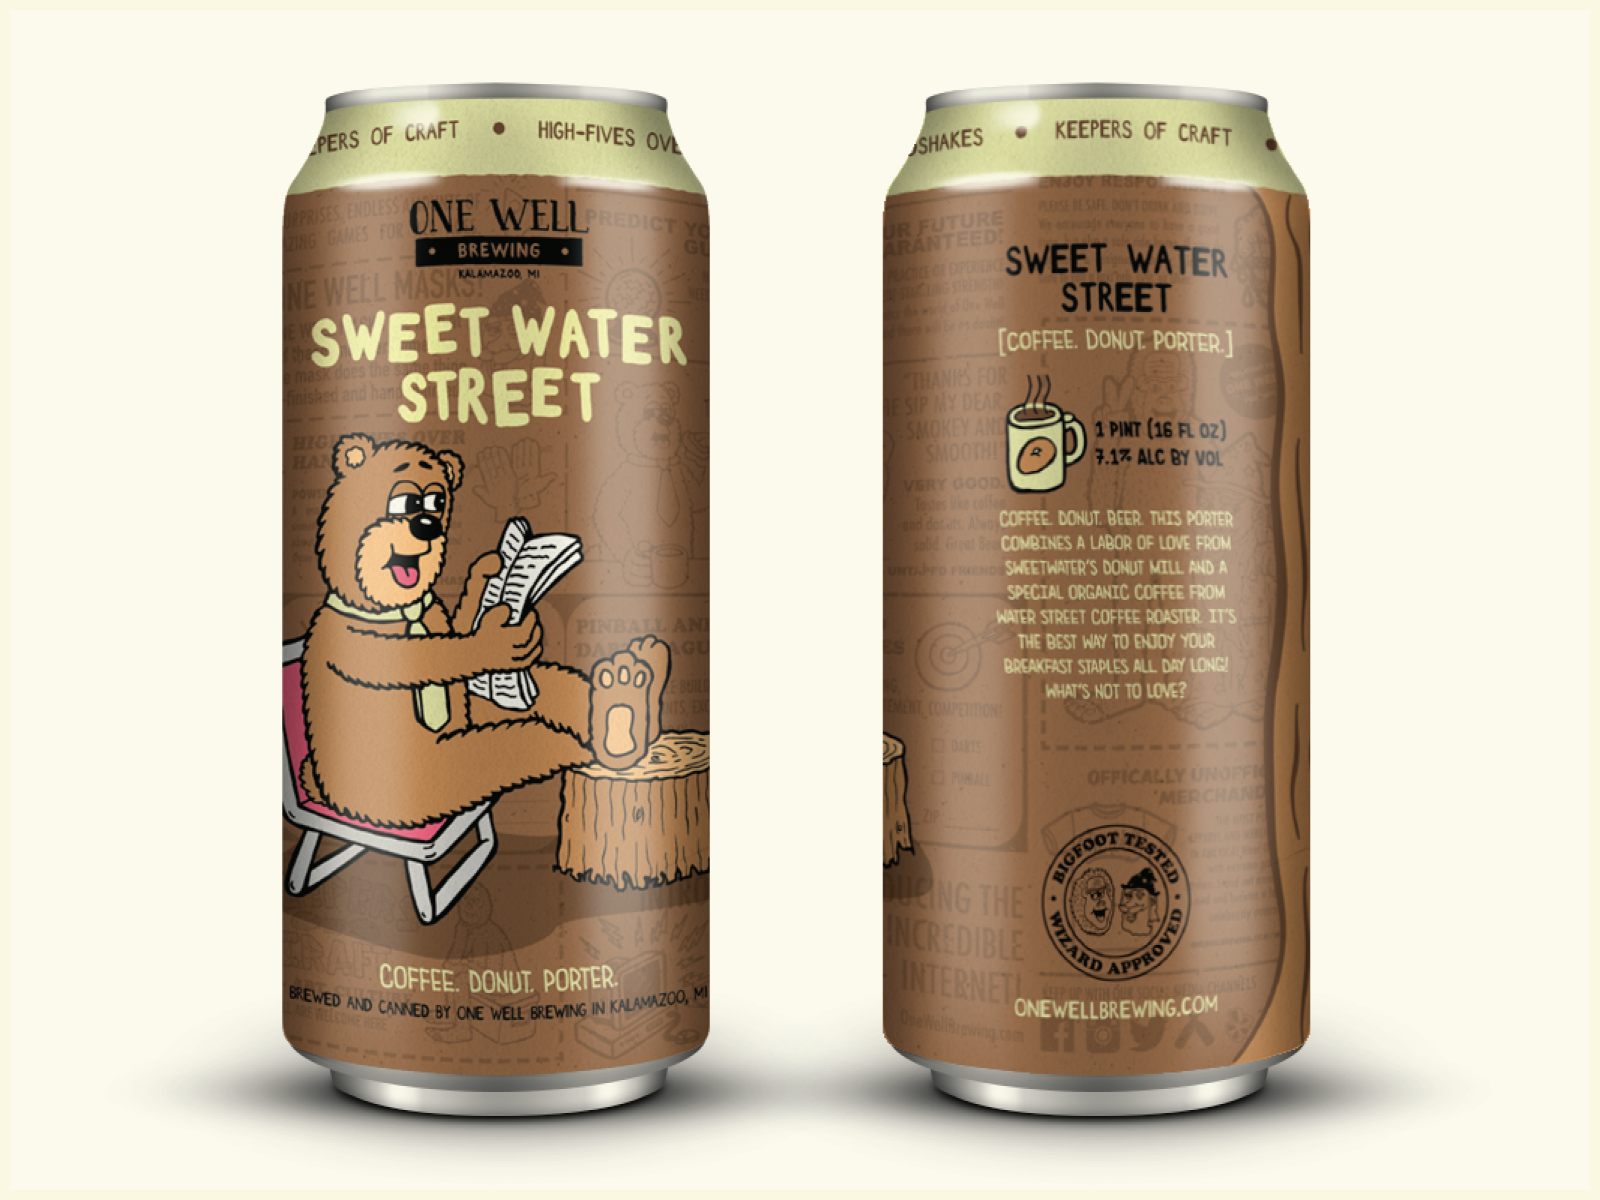 STUFFED_BRAIN_ONE_WELL_BREWING_CAN_SWEET_WATER_STREET_1.png